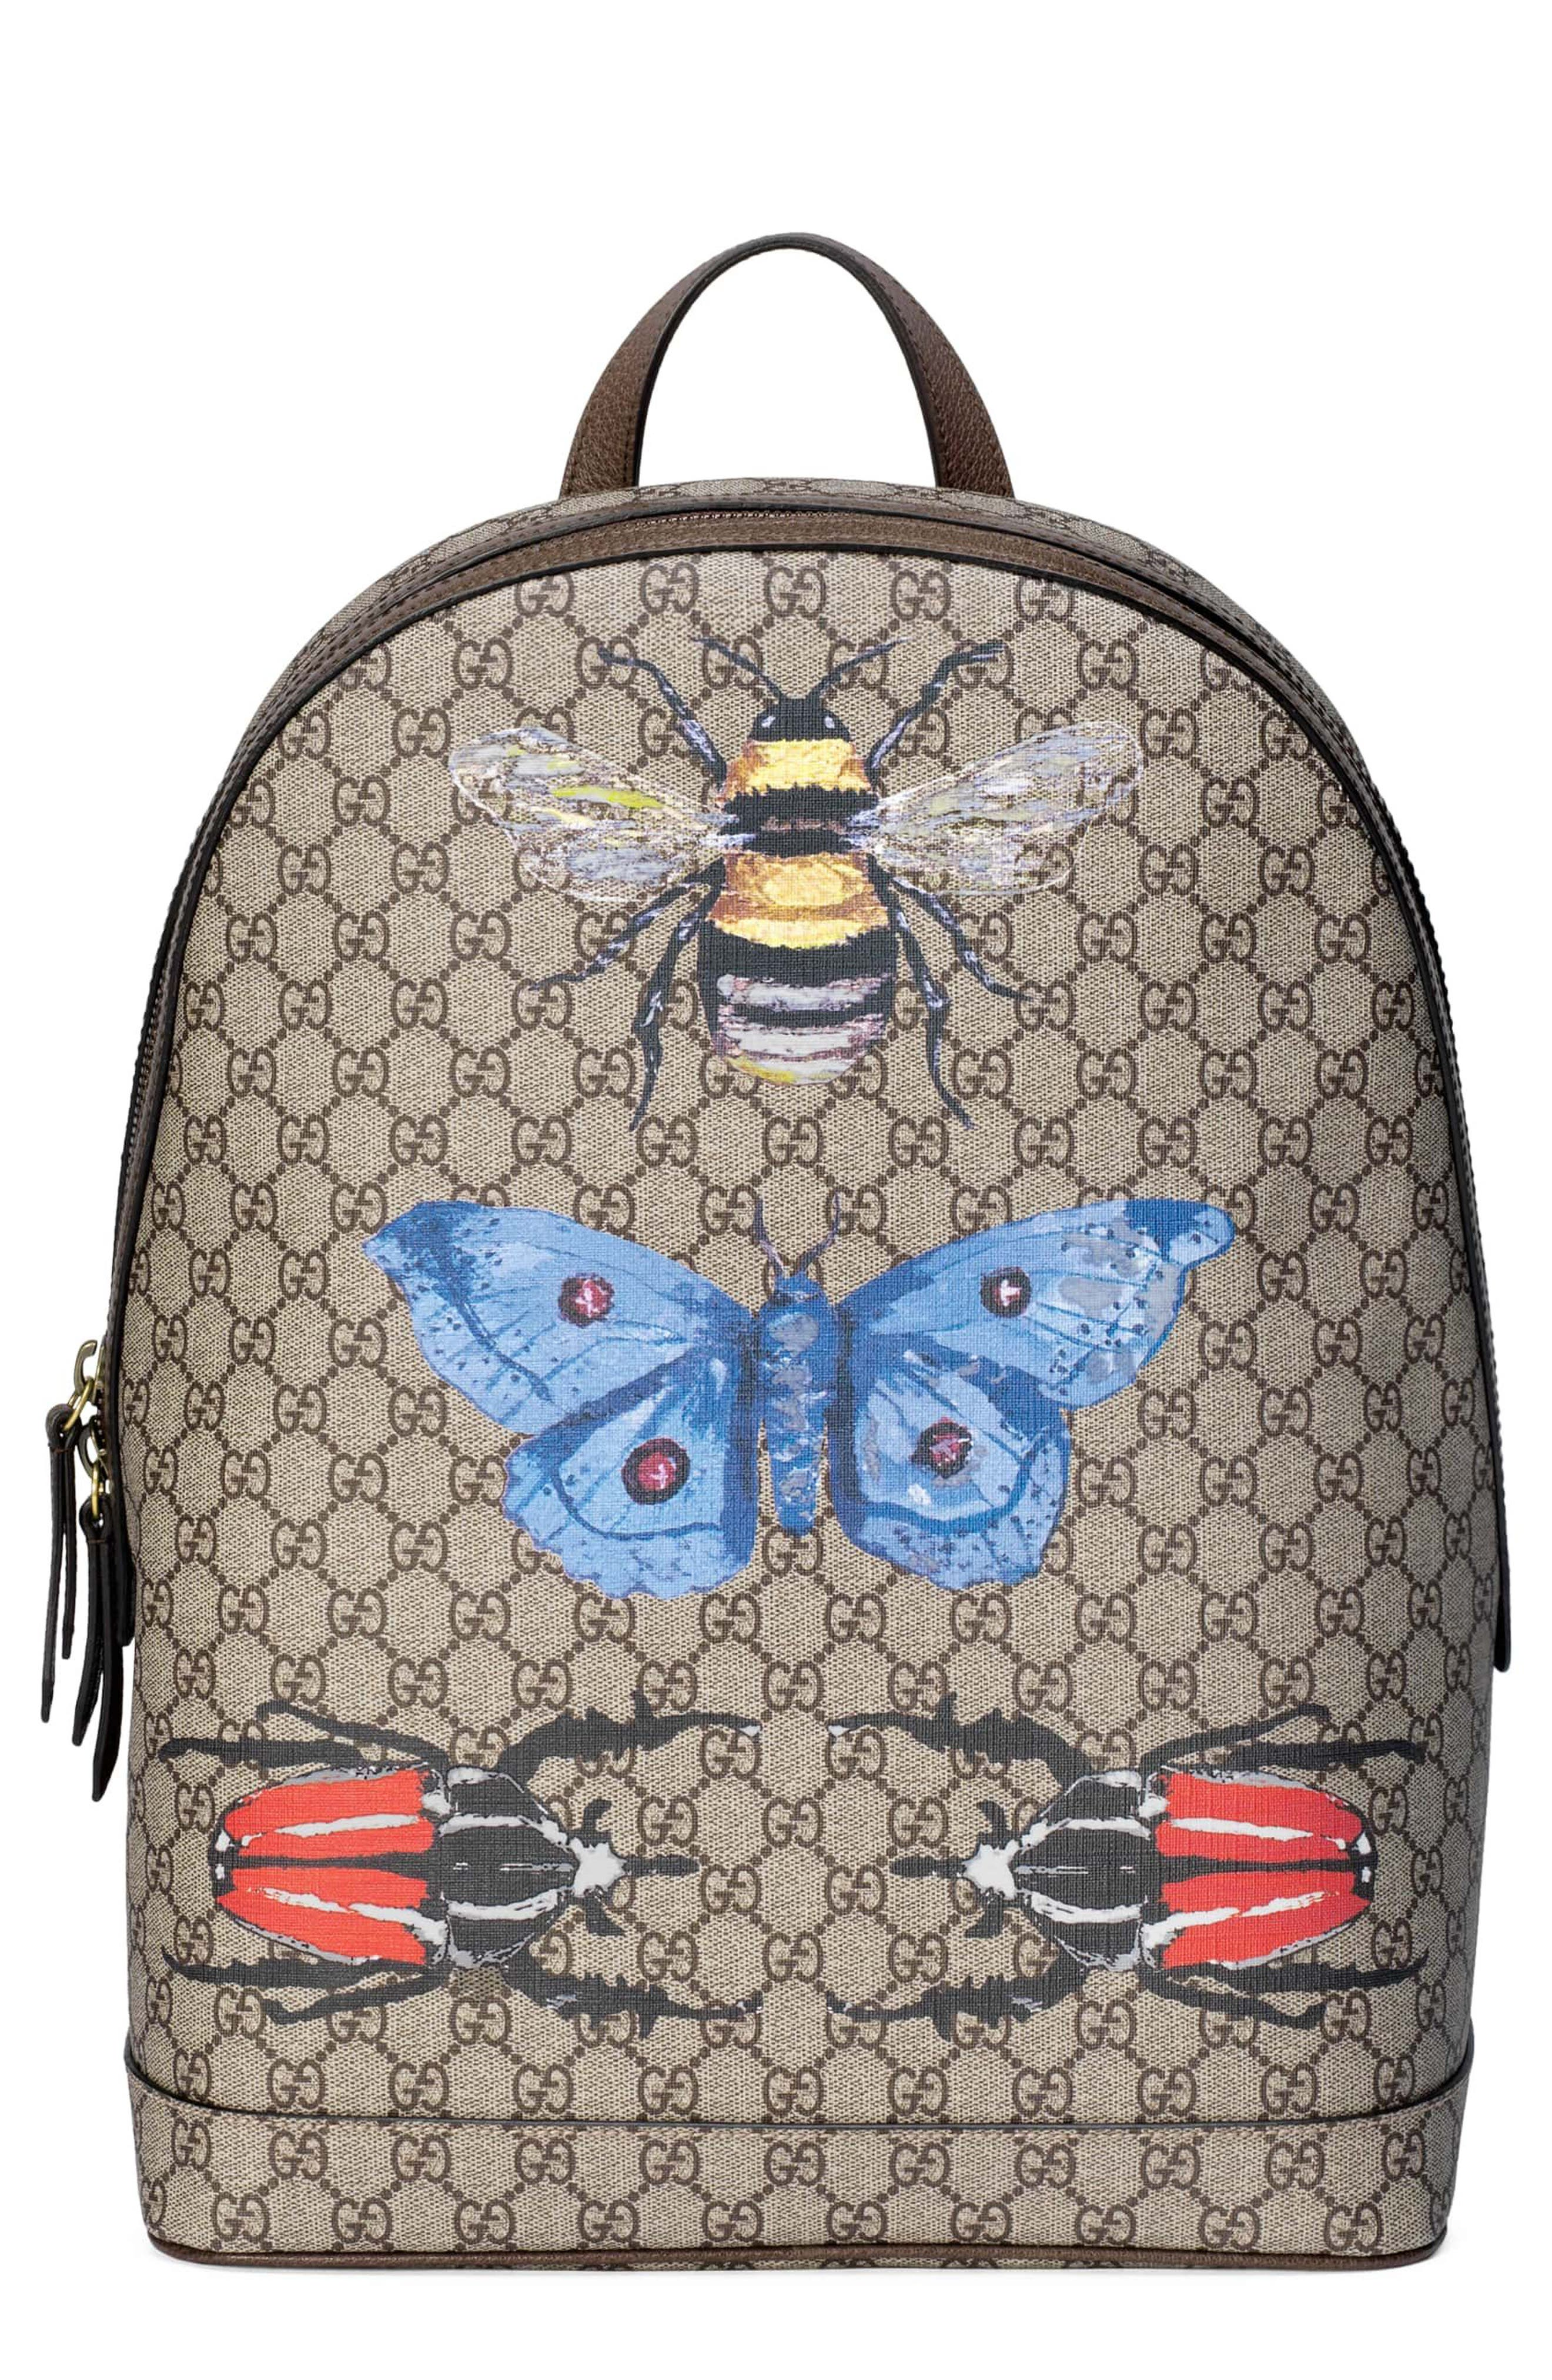 Insect Print GG Supreme Canvas Backpack,                             Main thumbnail 1, color,                             161